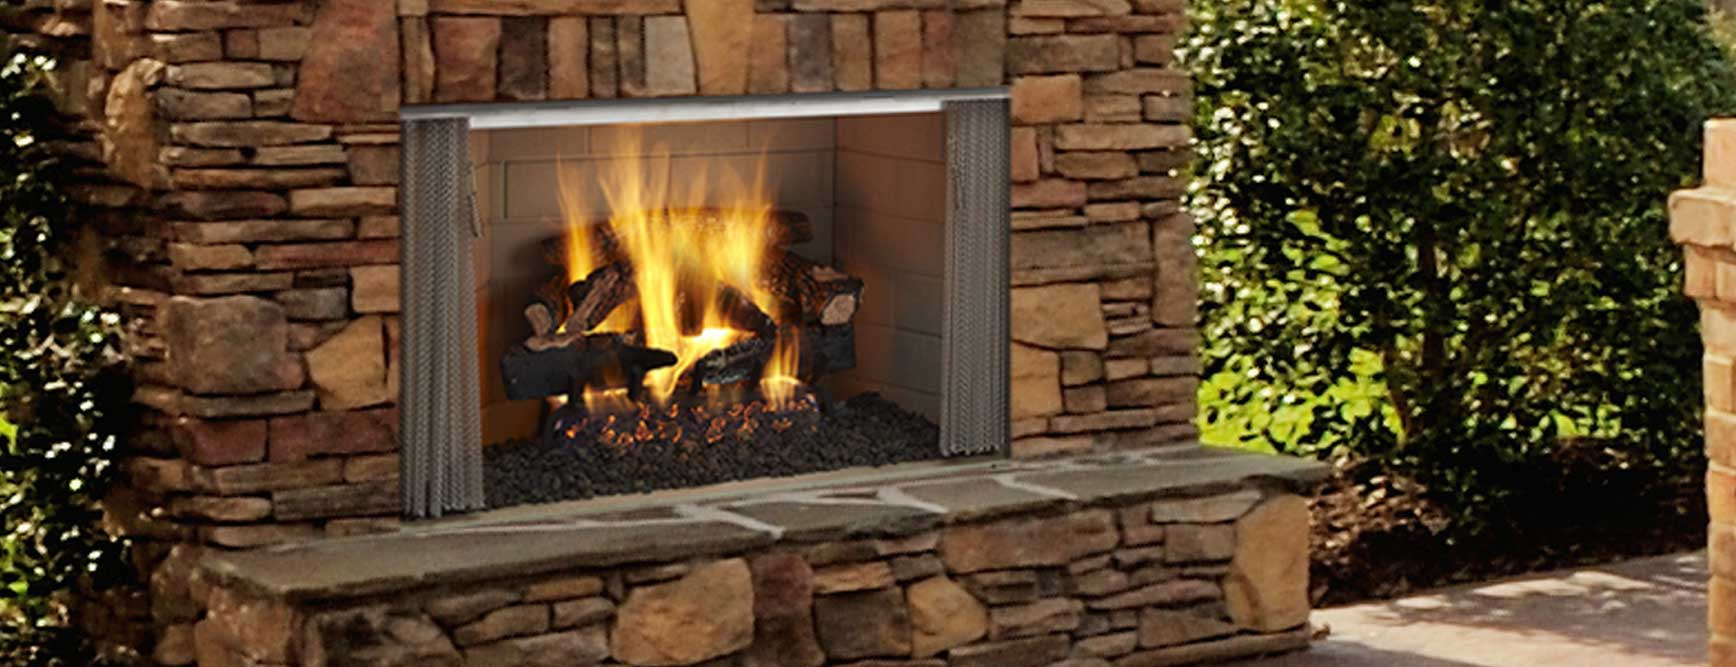 Enjoy Your Outdoor Living Space All Year Add An Outdoor Fireplace